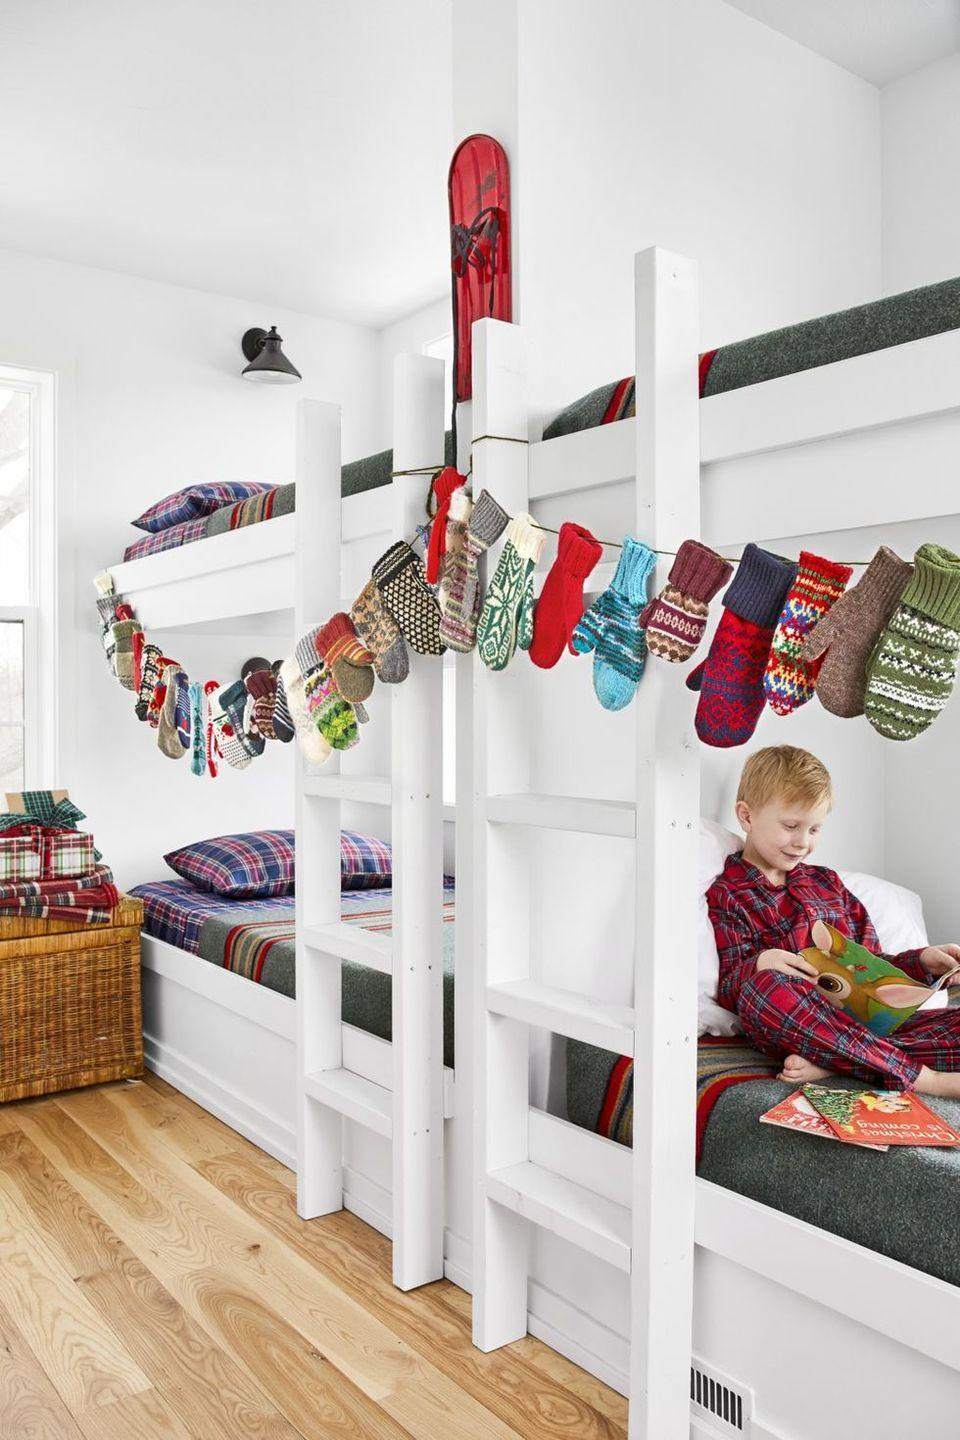 """<p>Clip an assortment of colorful mittens to a clothesline for something that's just as functional as it is eye-catching. Just make sure you keep it within reach, so that everyone can get a hold of their favorites.</p><p><strong>RELATED: </strong><a href=""""https://www.goodhousekeeping.com/holidays/christmas-ideas/g34004079/winter-crafts/"""" rel=""""nofollow noopener"""" target=""""_blank"""" data-ylk=""""slk:Winter Crafts That Anyone Can Make"""" class=""""link rapid-noclick-resp"""">Winter Crafts That Anyone Can Make </a></p>"""